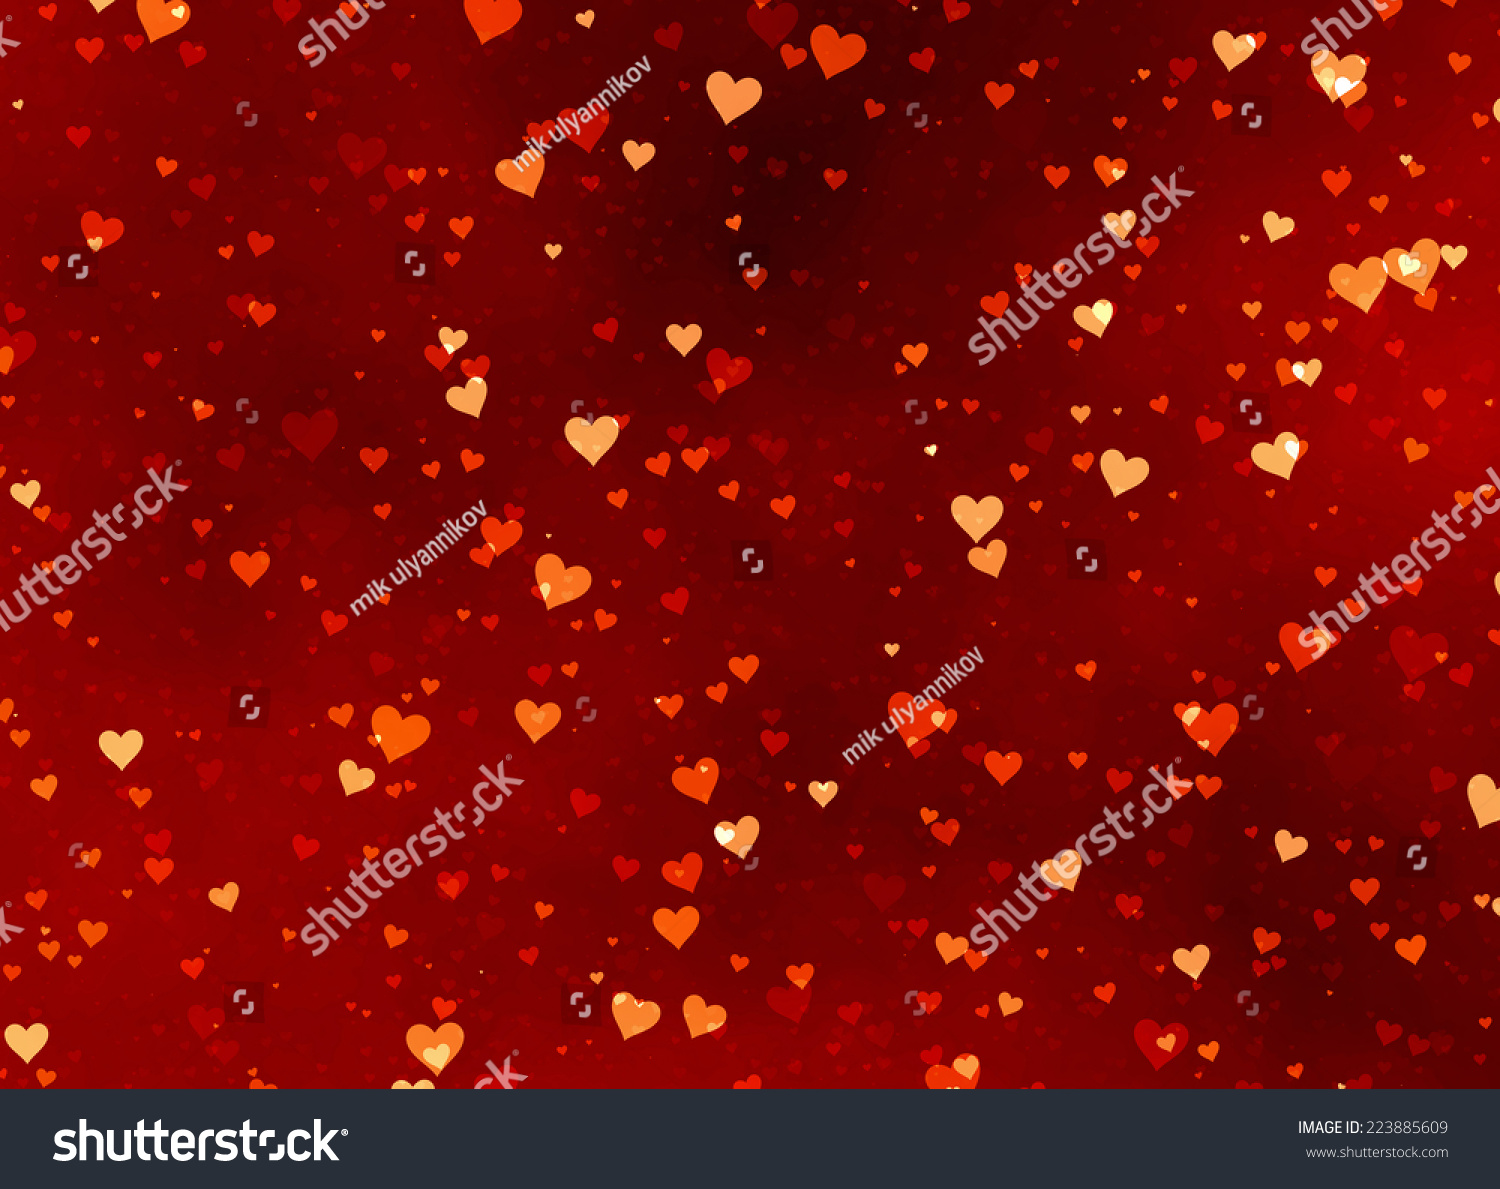 Red Hearts Backgrounds Valentines Day Love Stock